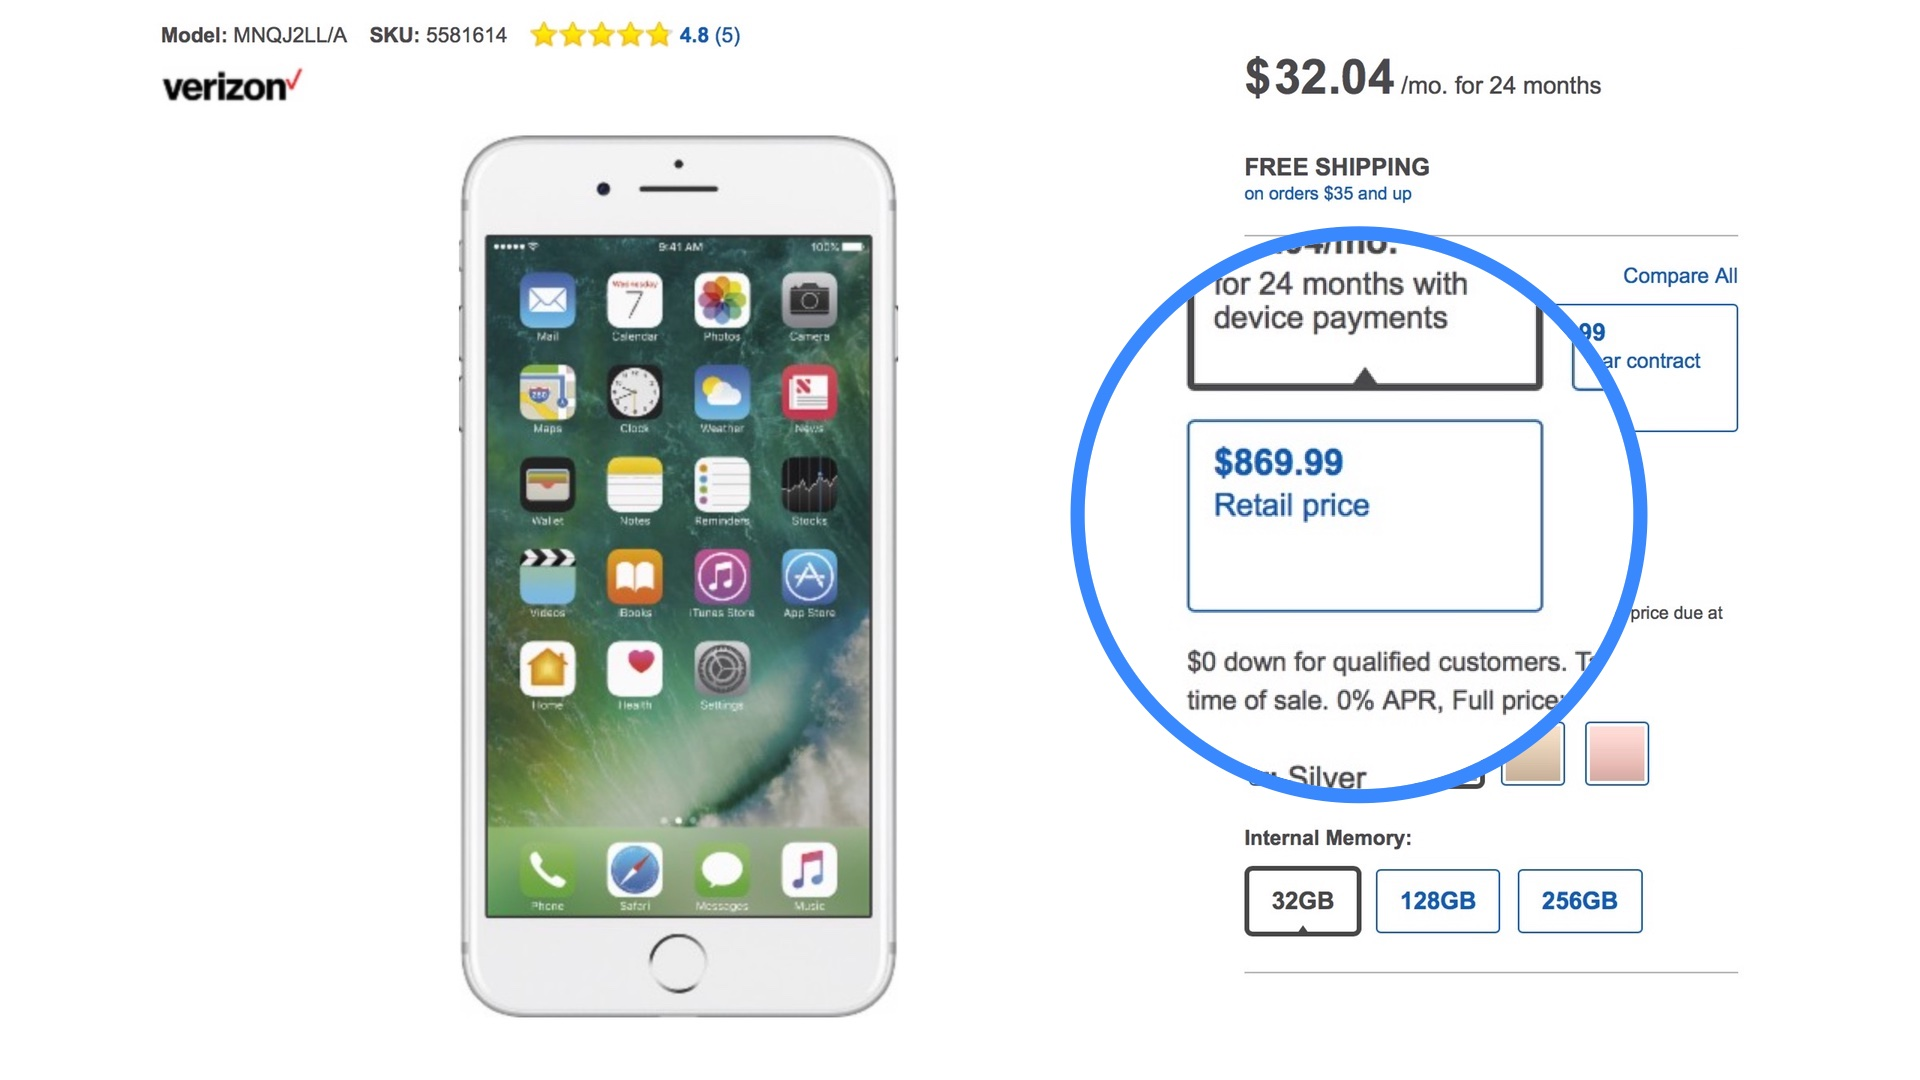 b14f5669b35 PSA: Careful out there, Best Buy is charging $50 to $100 over full MSRP for  the iPhone 7 - 9to5Mac